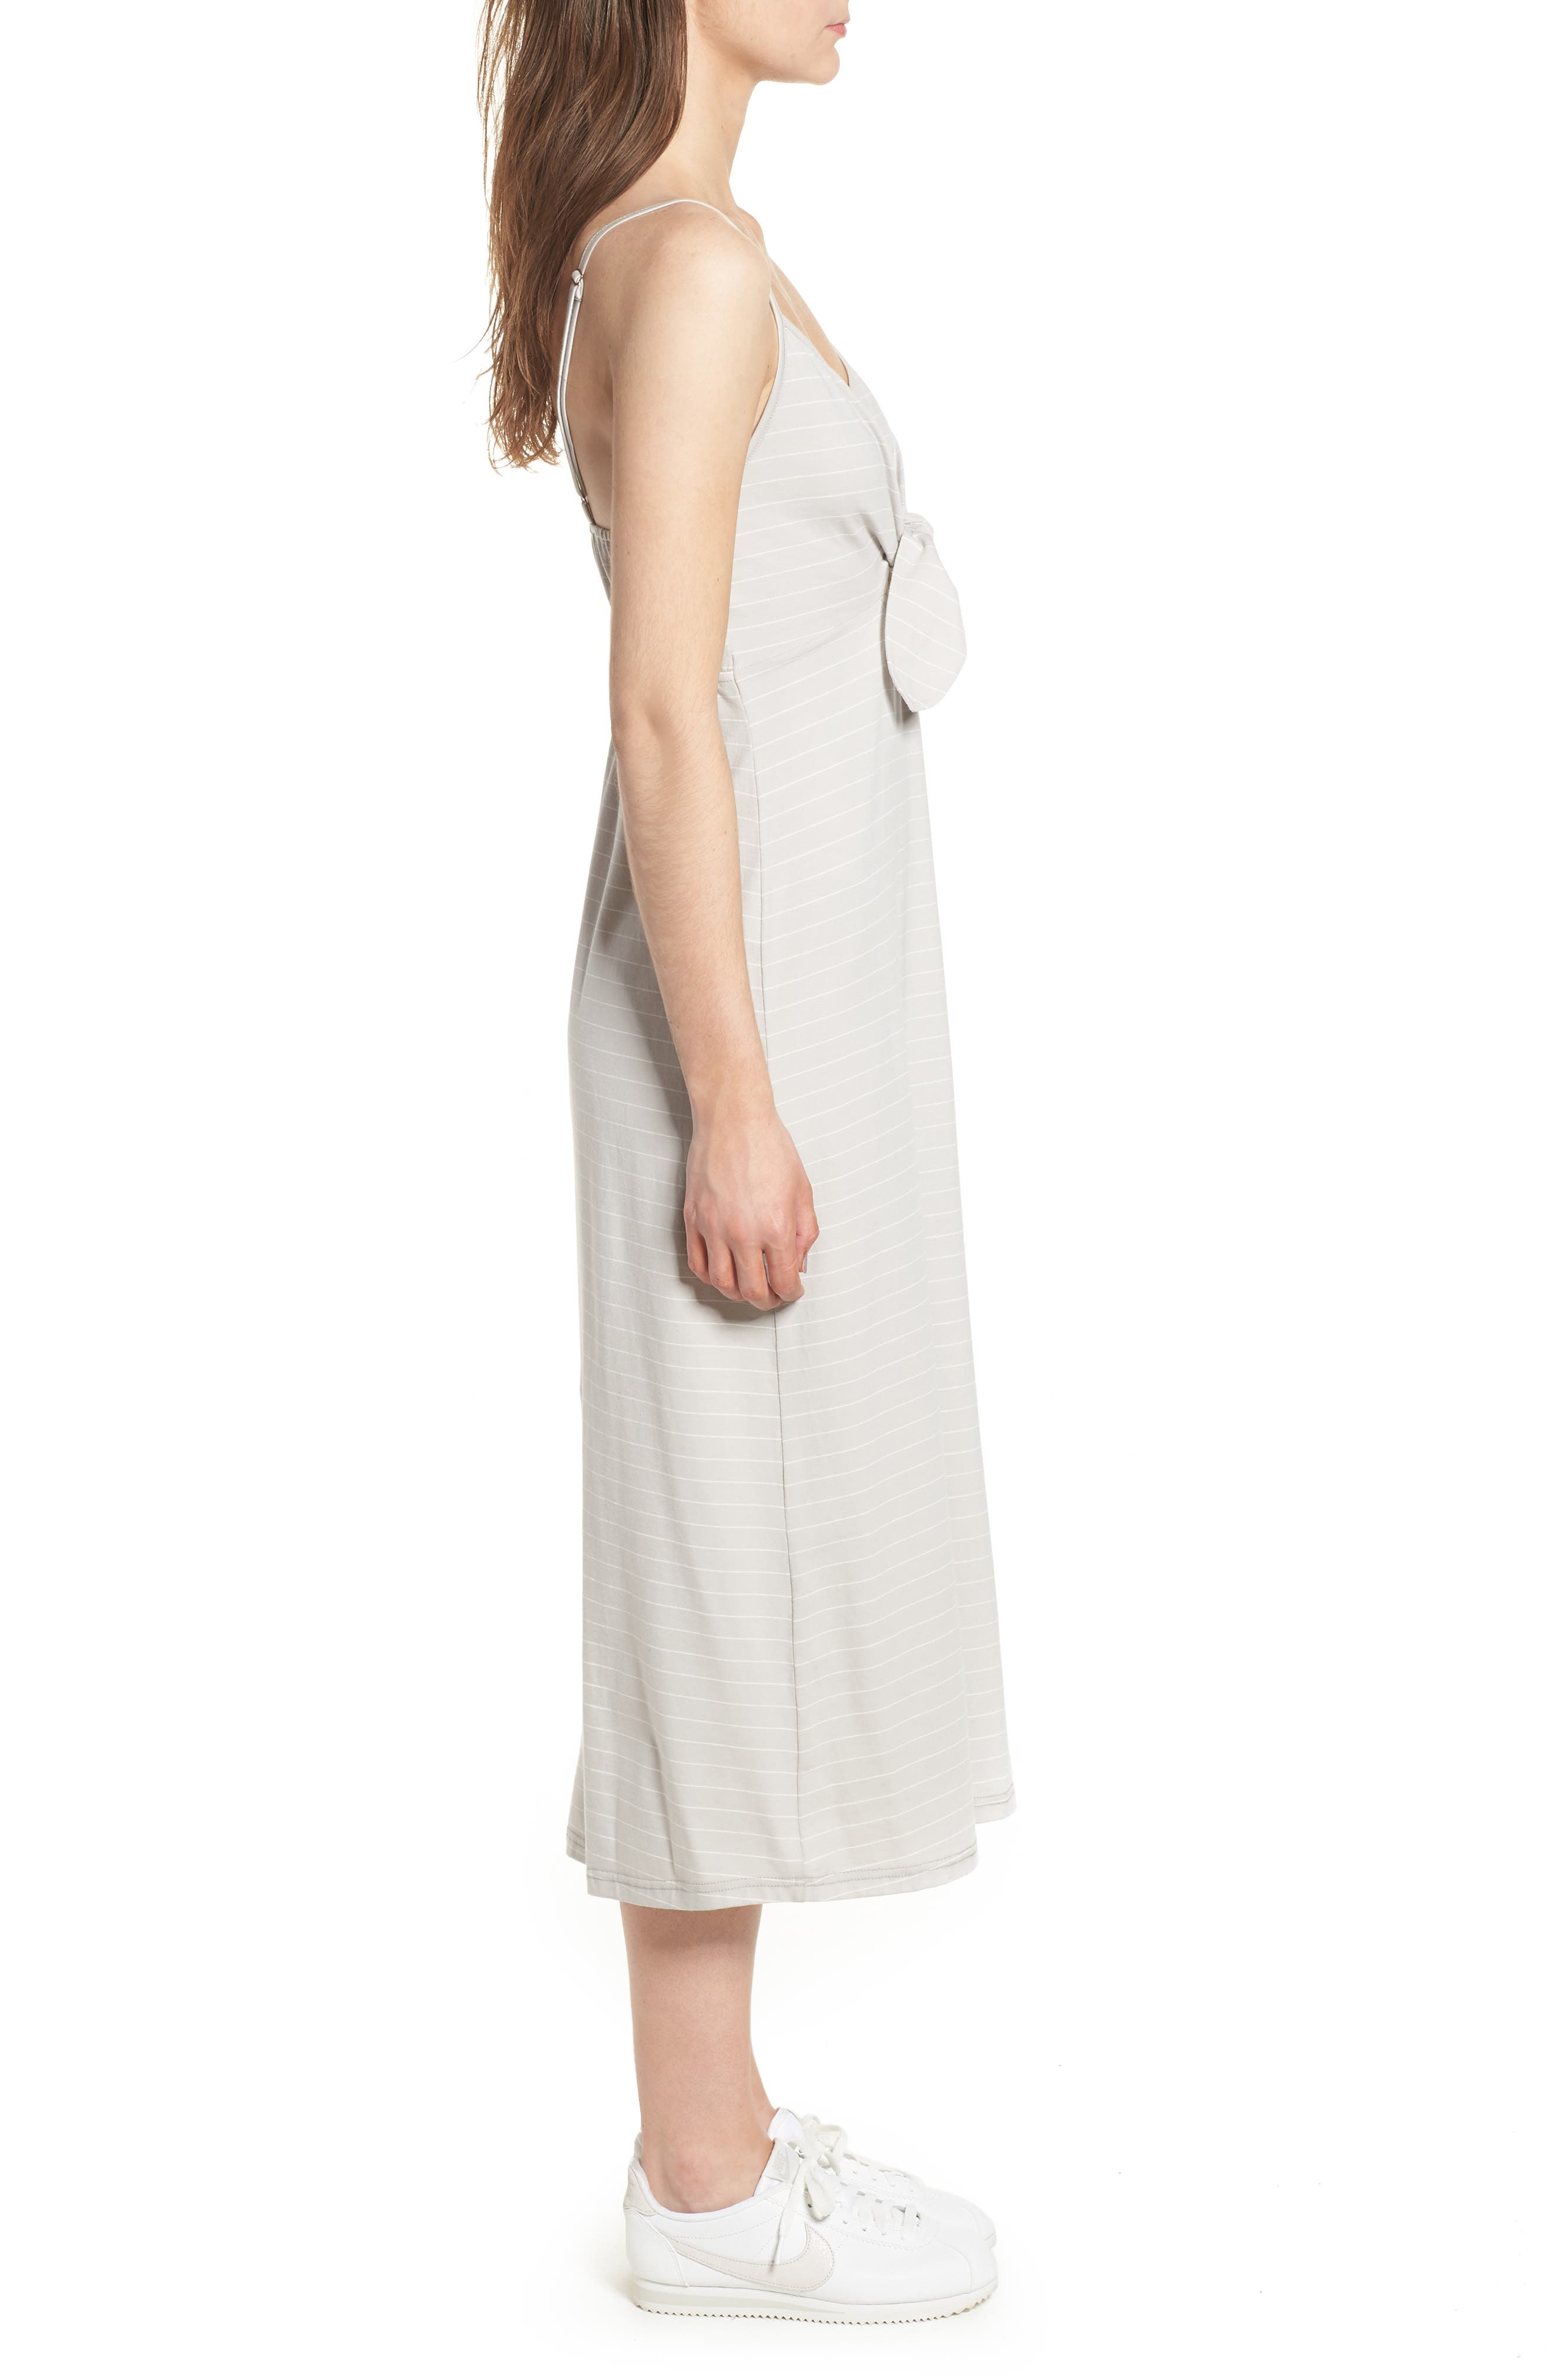 Suzanne Knot Front Dress,                             Alternate thumbnail 8, color,